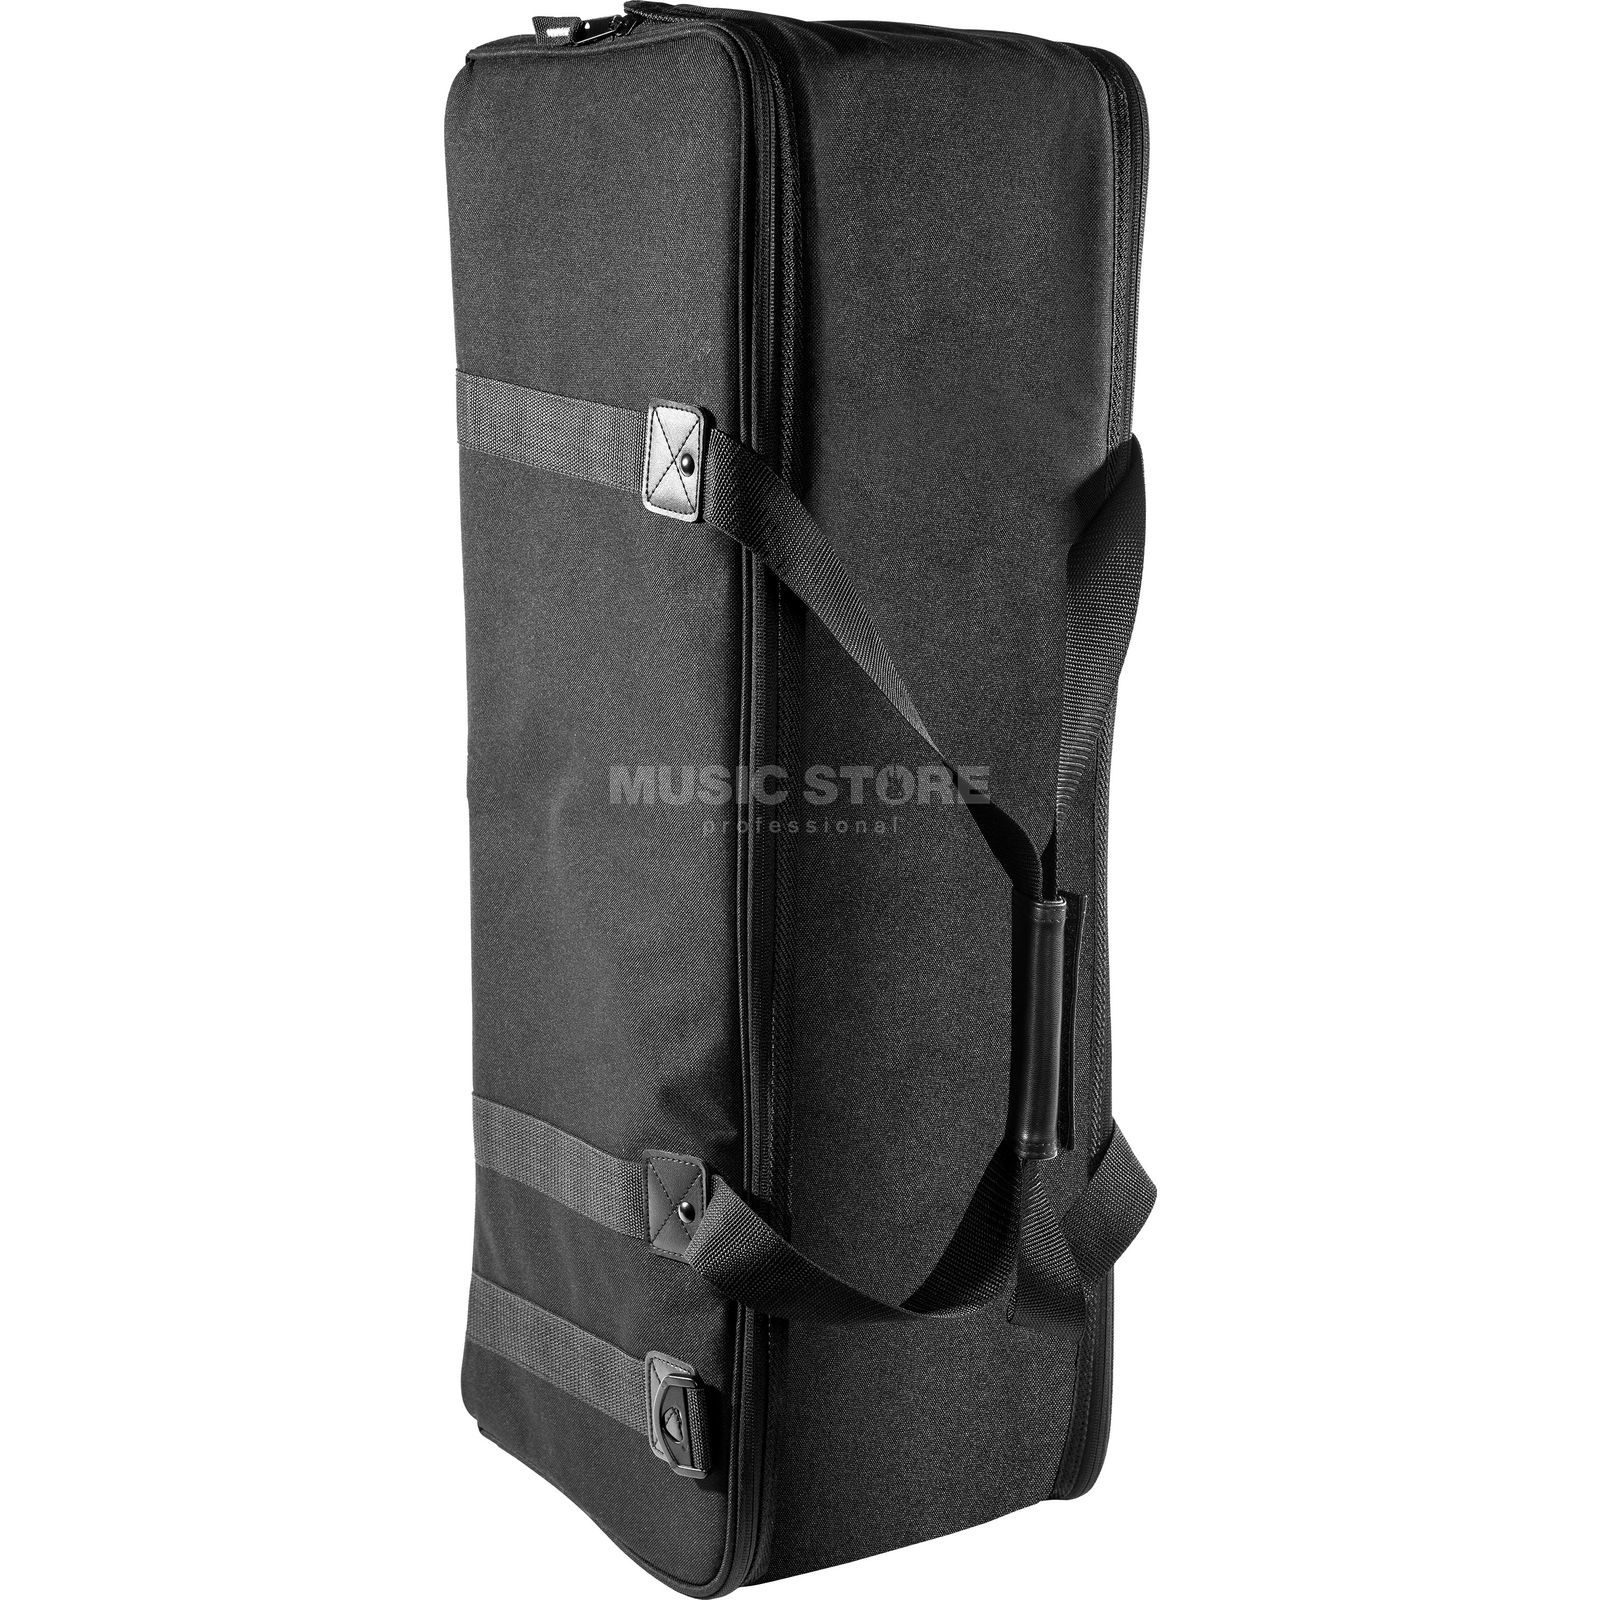 Mackie Reach Bag Product Image